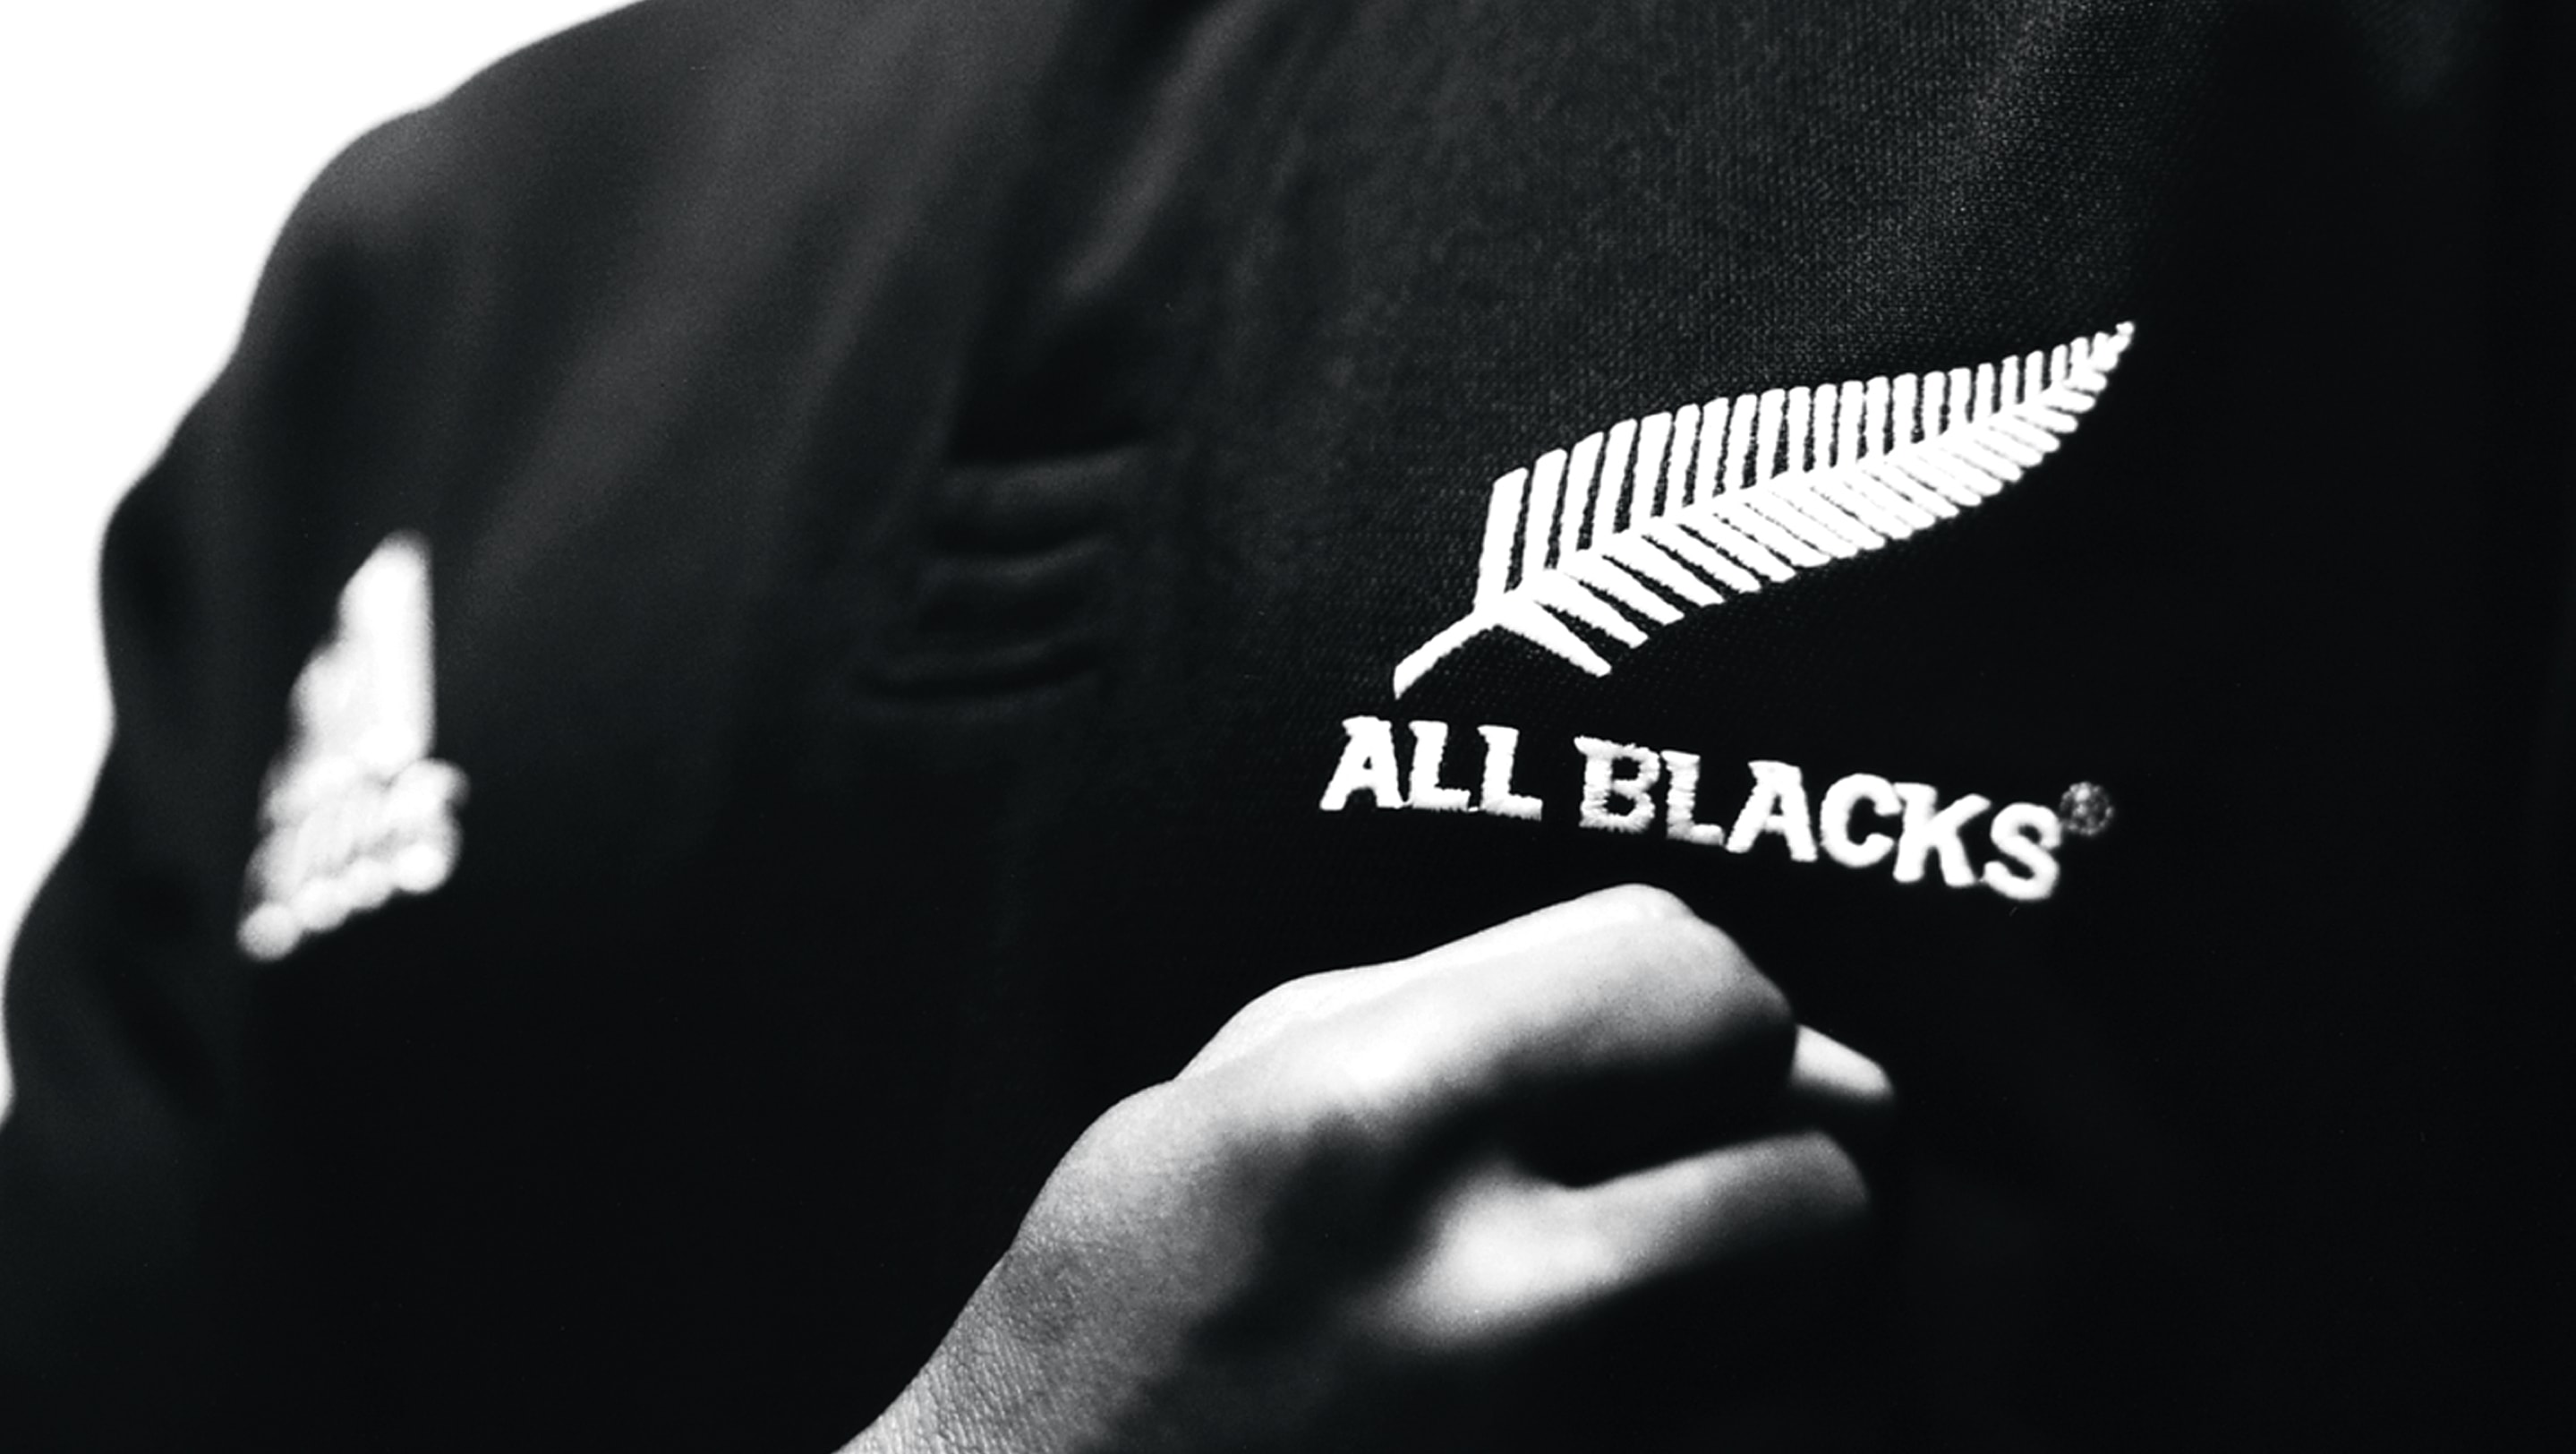 All Blacks Stronger